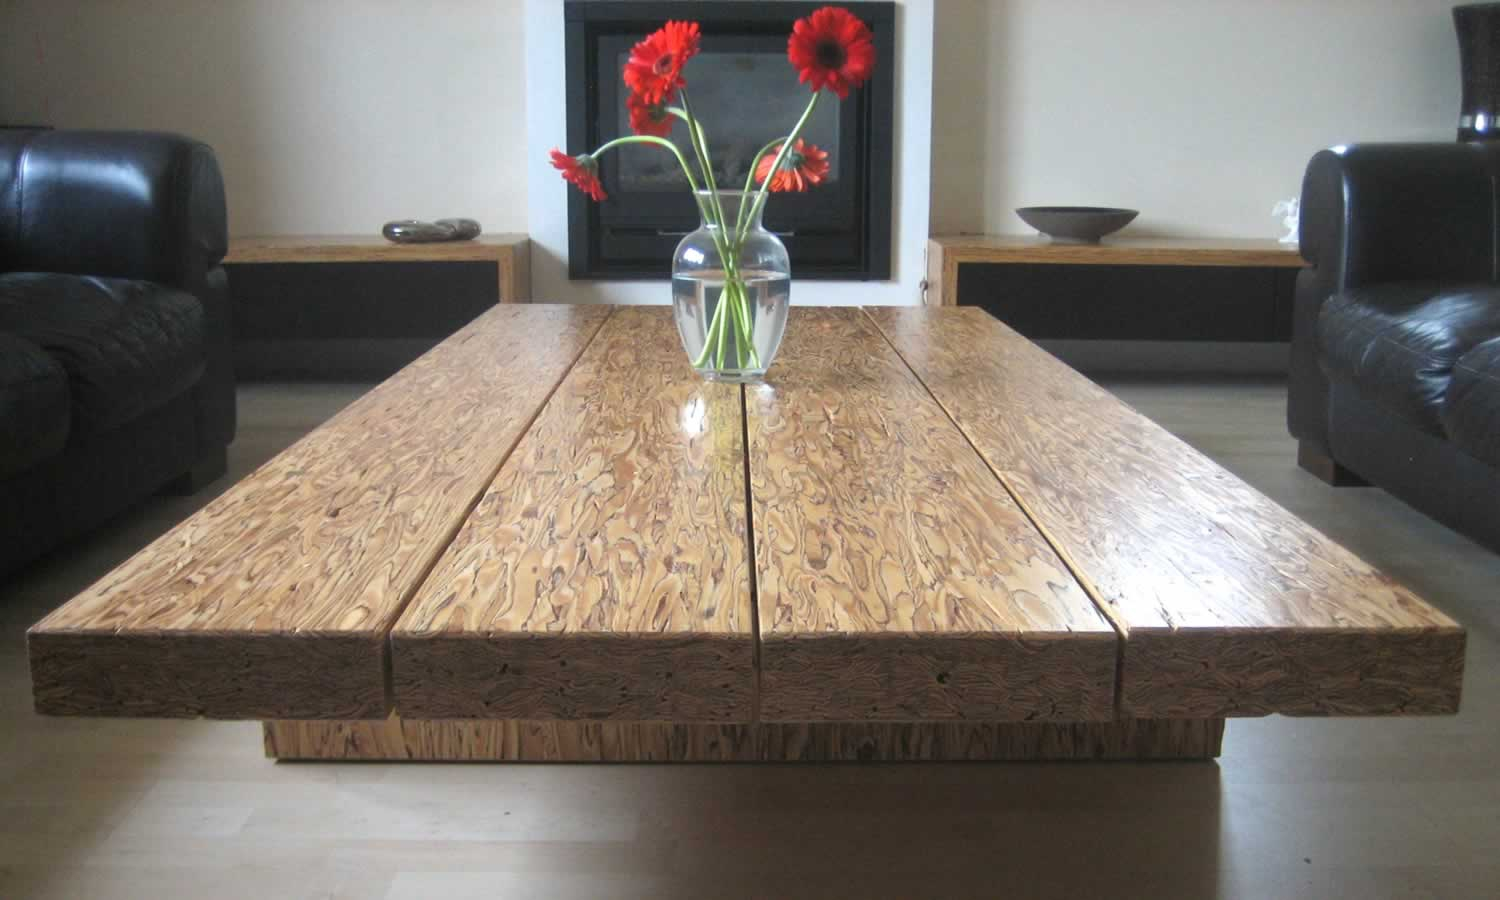 Woodworkshop Occasional Table